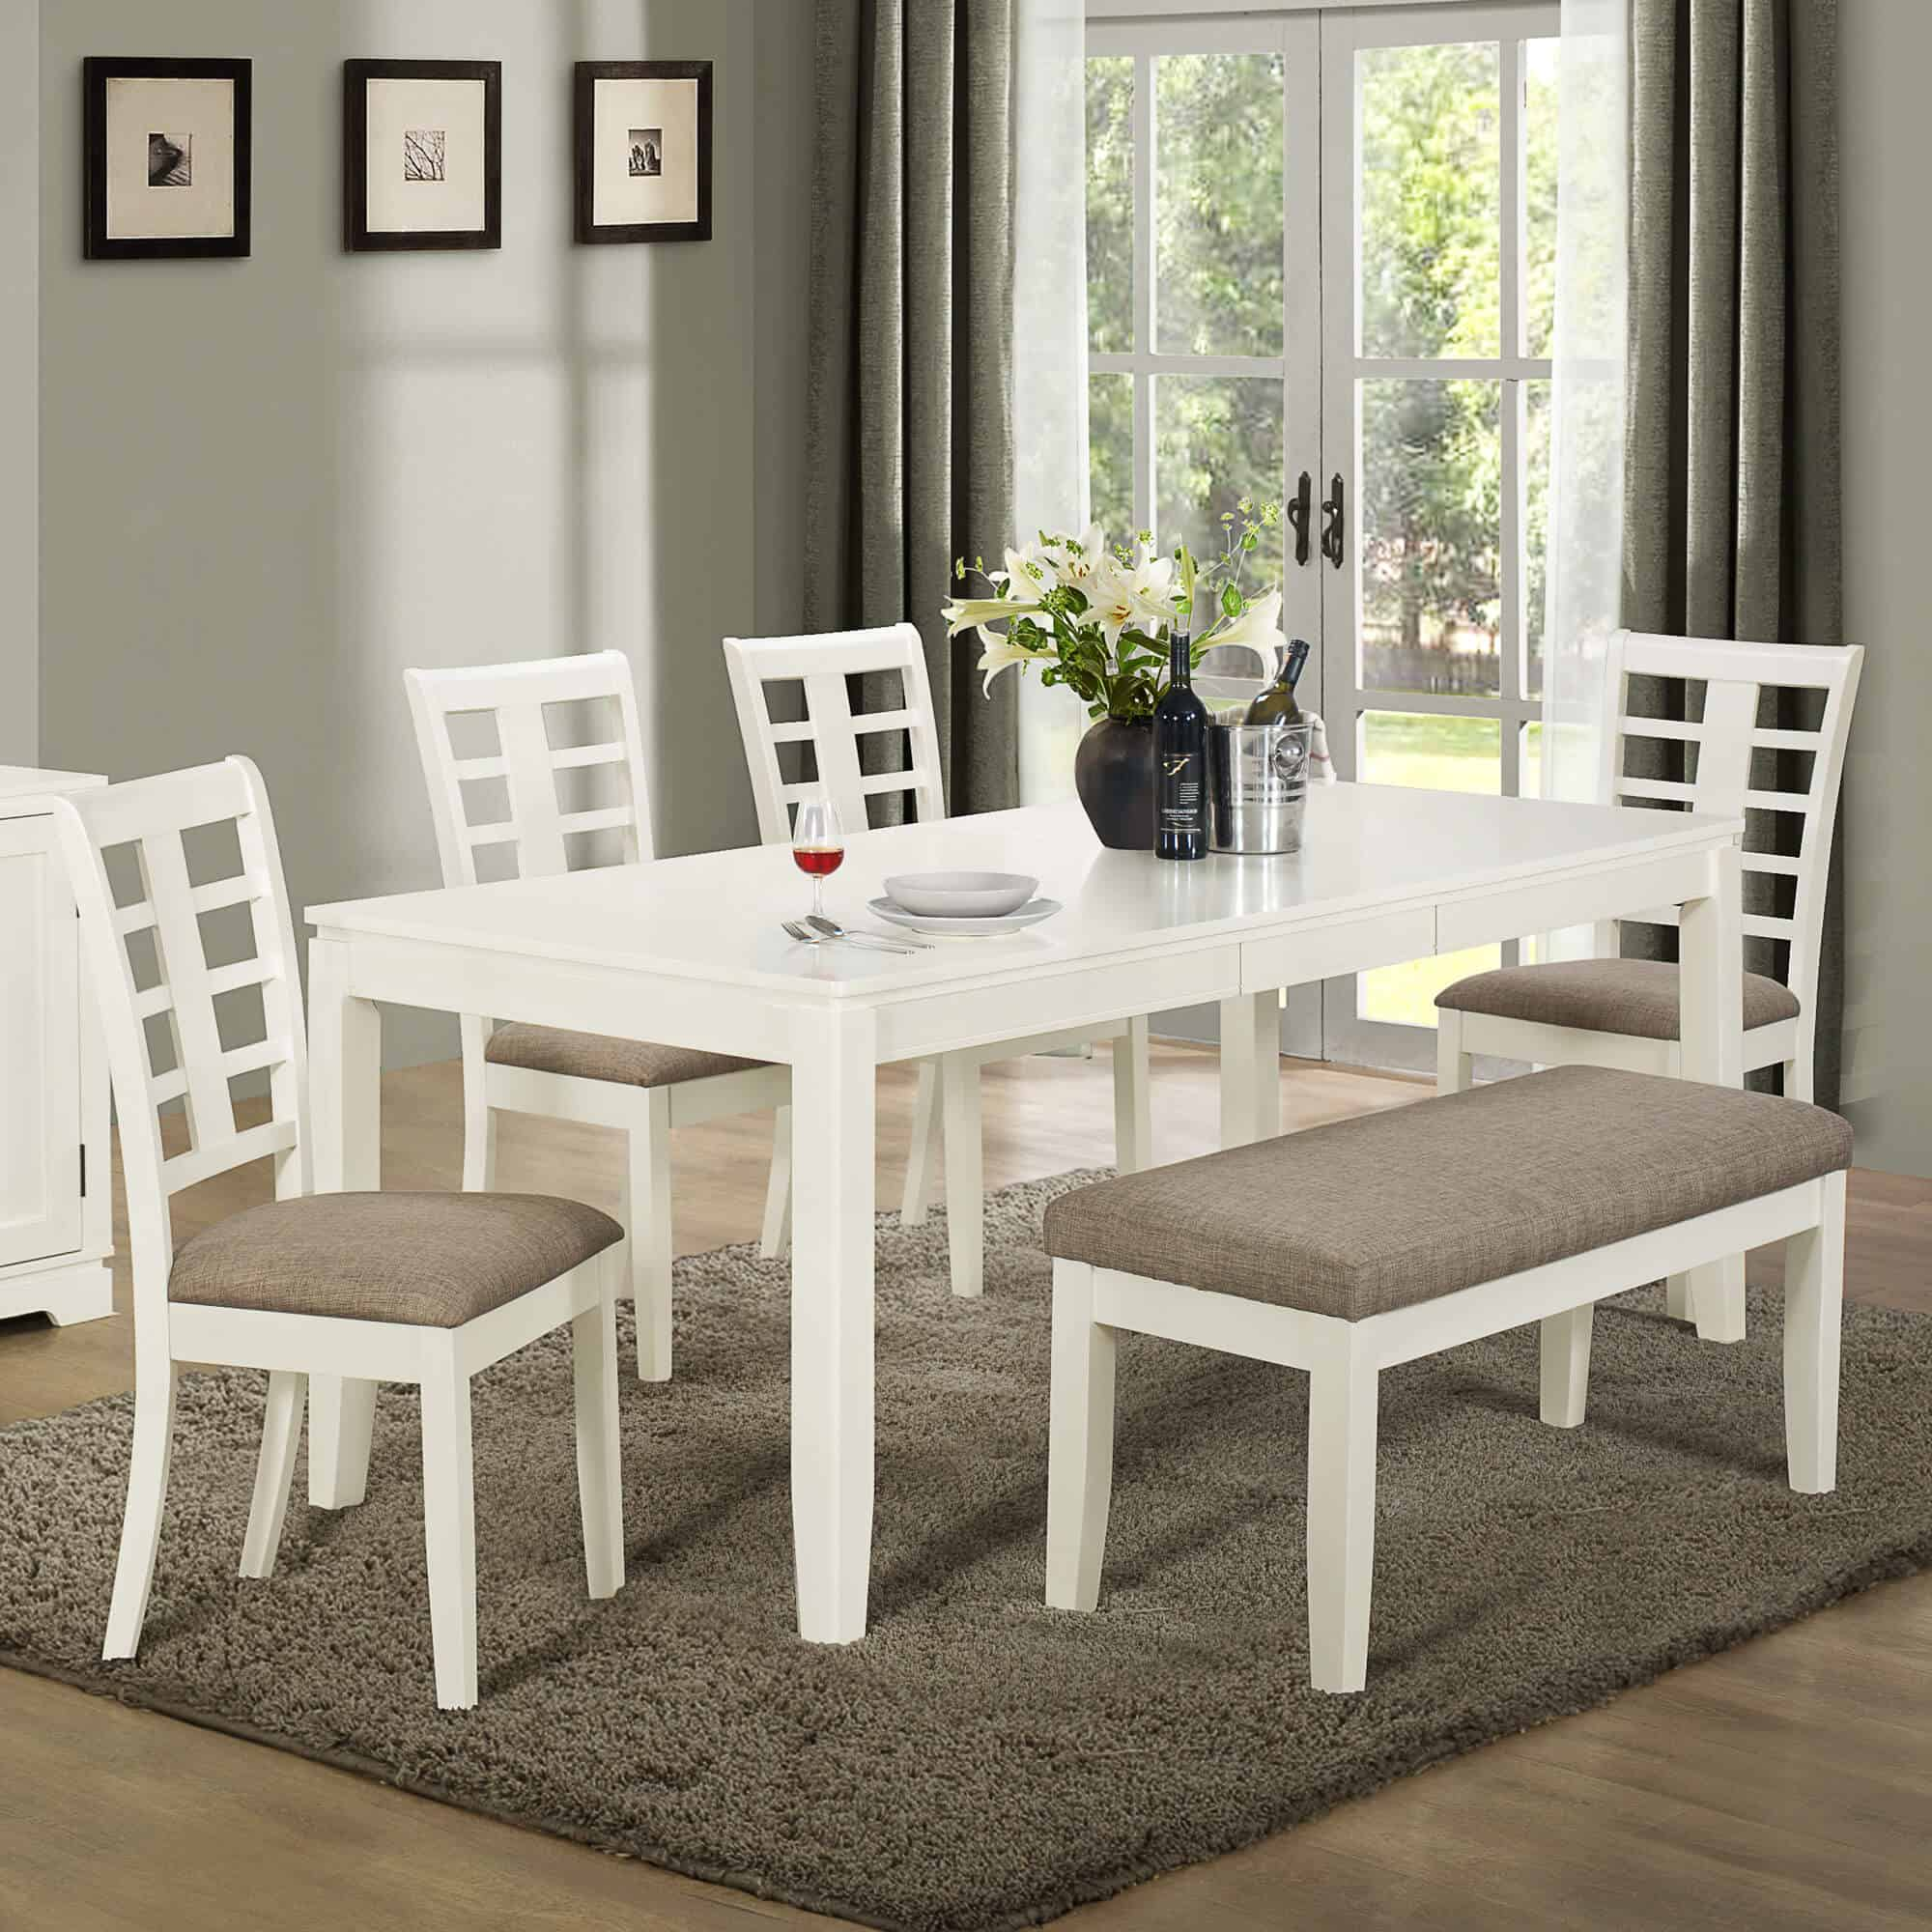 Fascinating-White-Dining-Room-Table-With-Bench-53-In-Ikea-Dining-Room-Table-And-Chairs-with-White-Dining-Room-Table-With-Bench